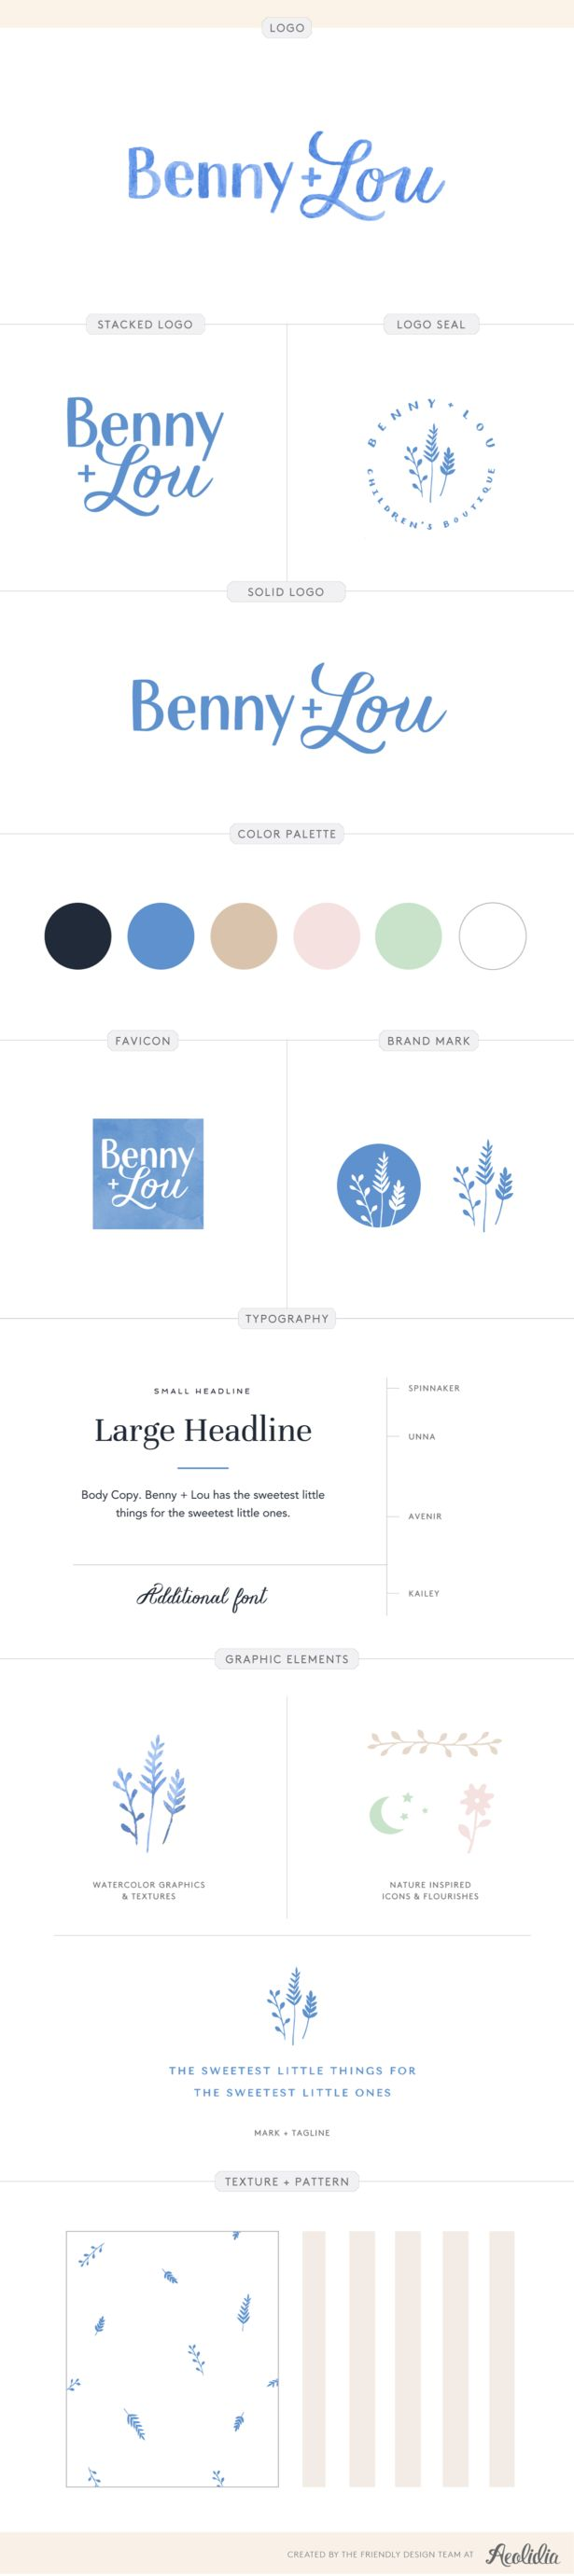 Benny + Lou: Starting a Baby Clothing Store with the Right First Steps Click to read more, or save this pin to read later!